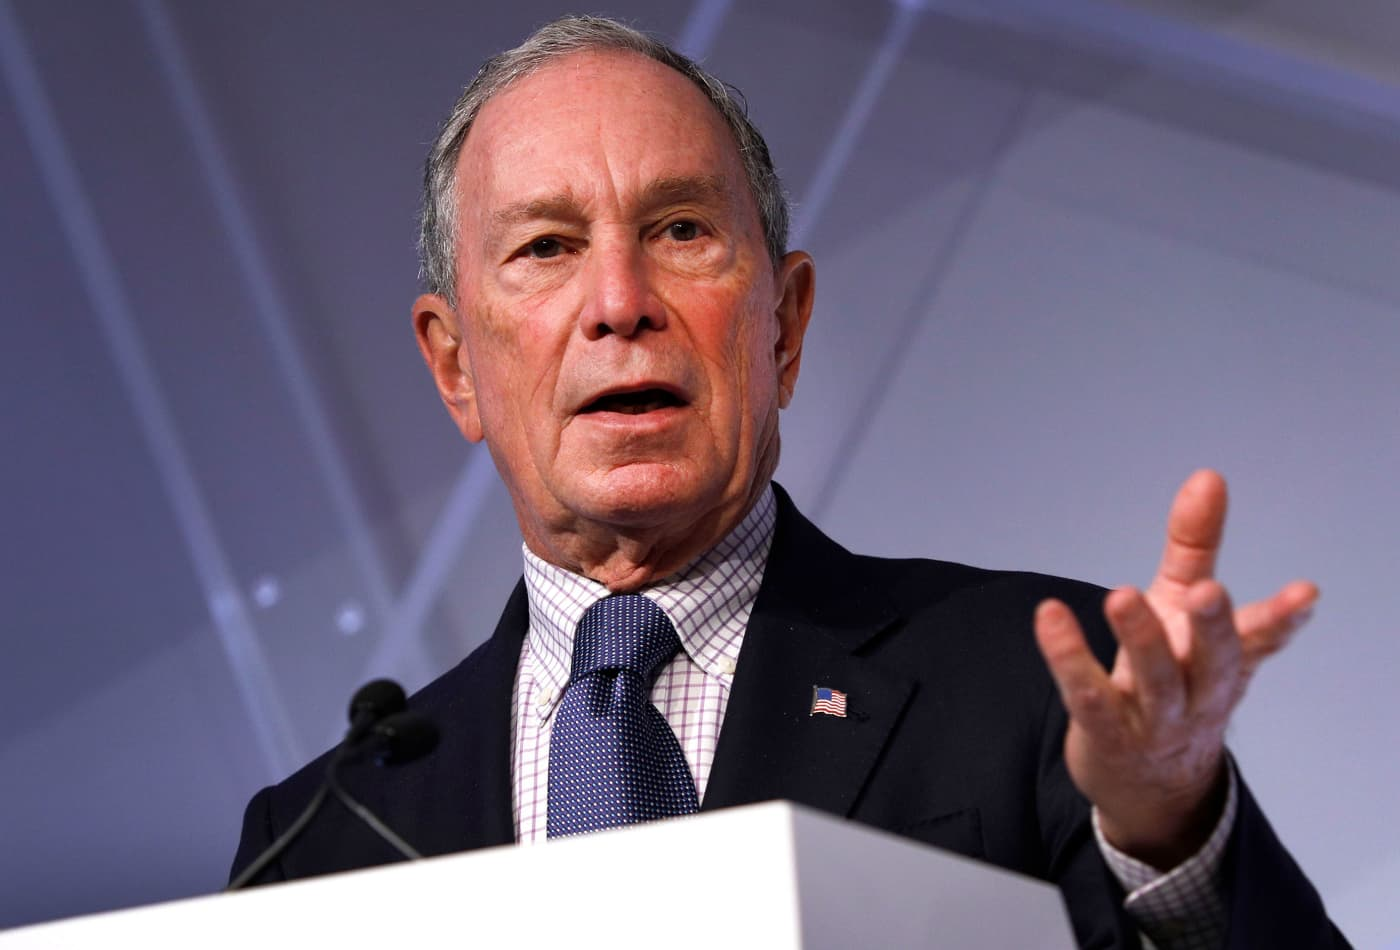 Bloomberg's company announces new mandatory sexual harassment training